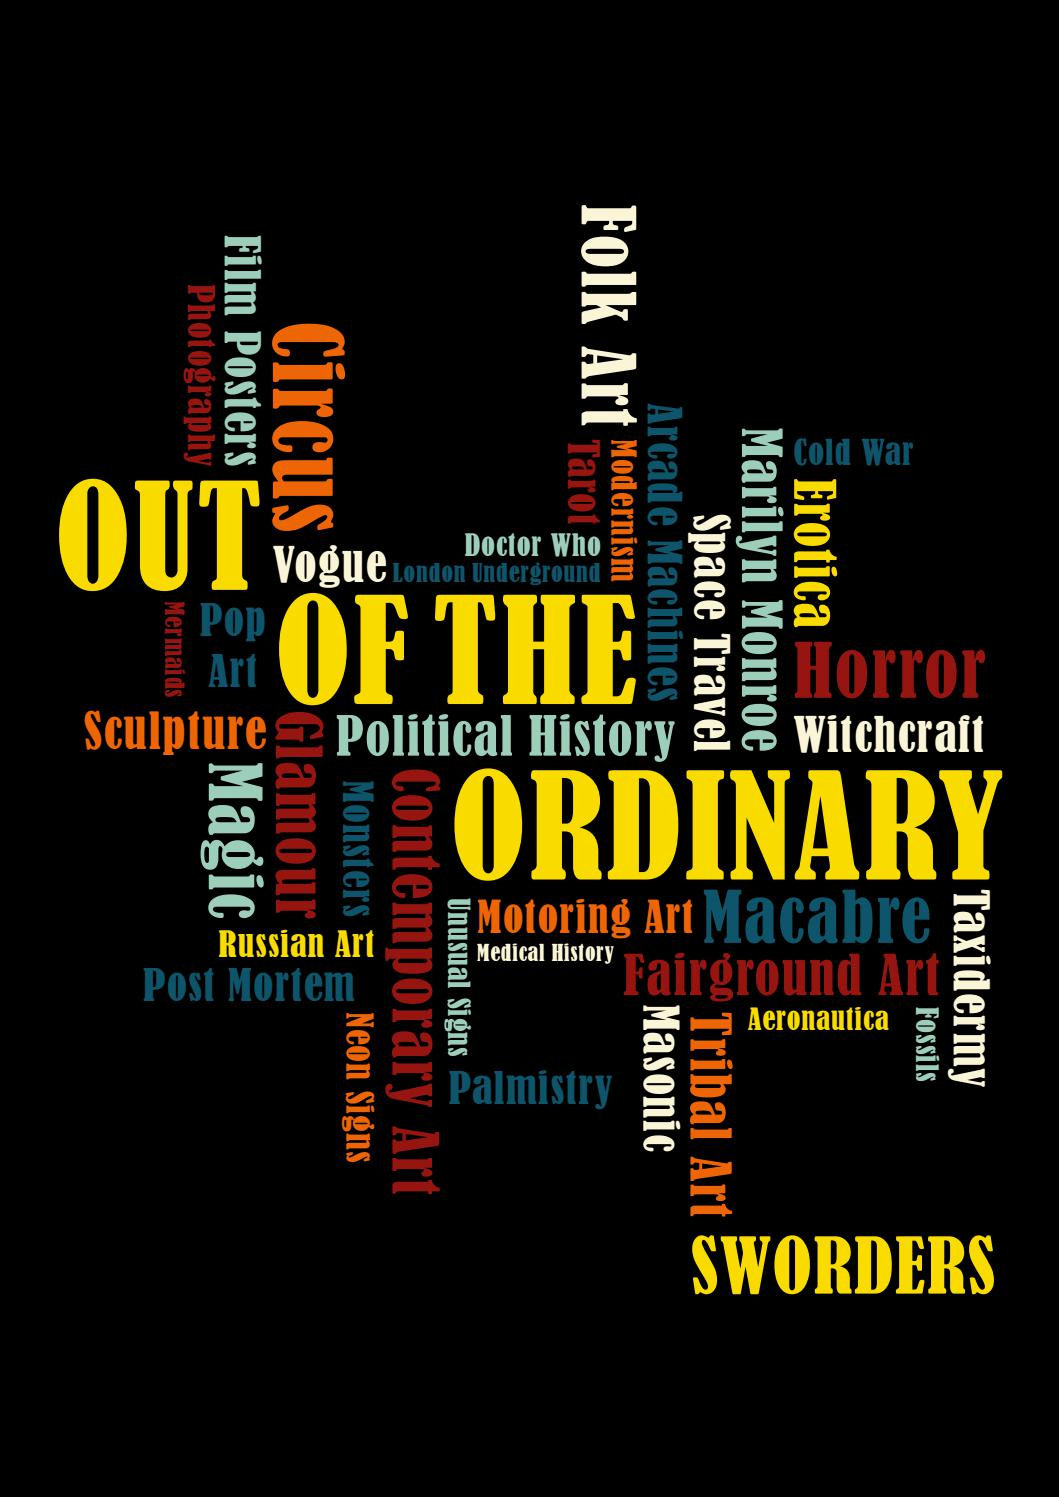 Out Of The Ordinary Tuesday 13 Wednesday 14 April 10am By Swordersfineart Issuu